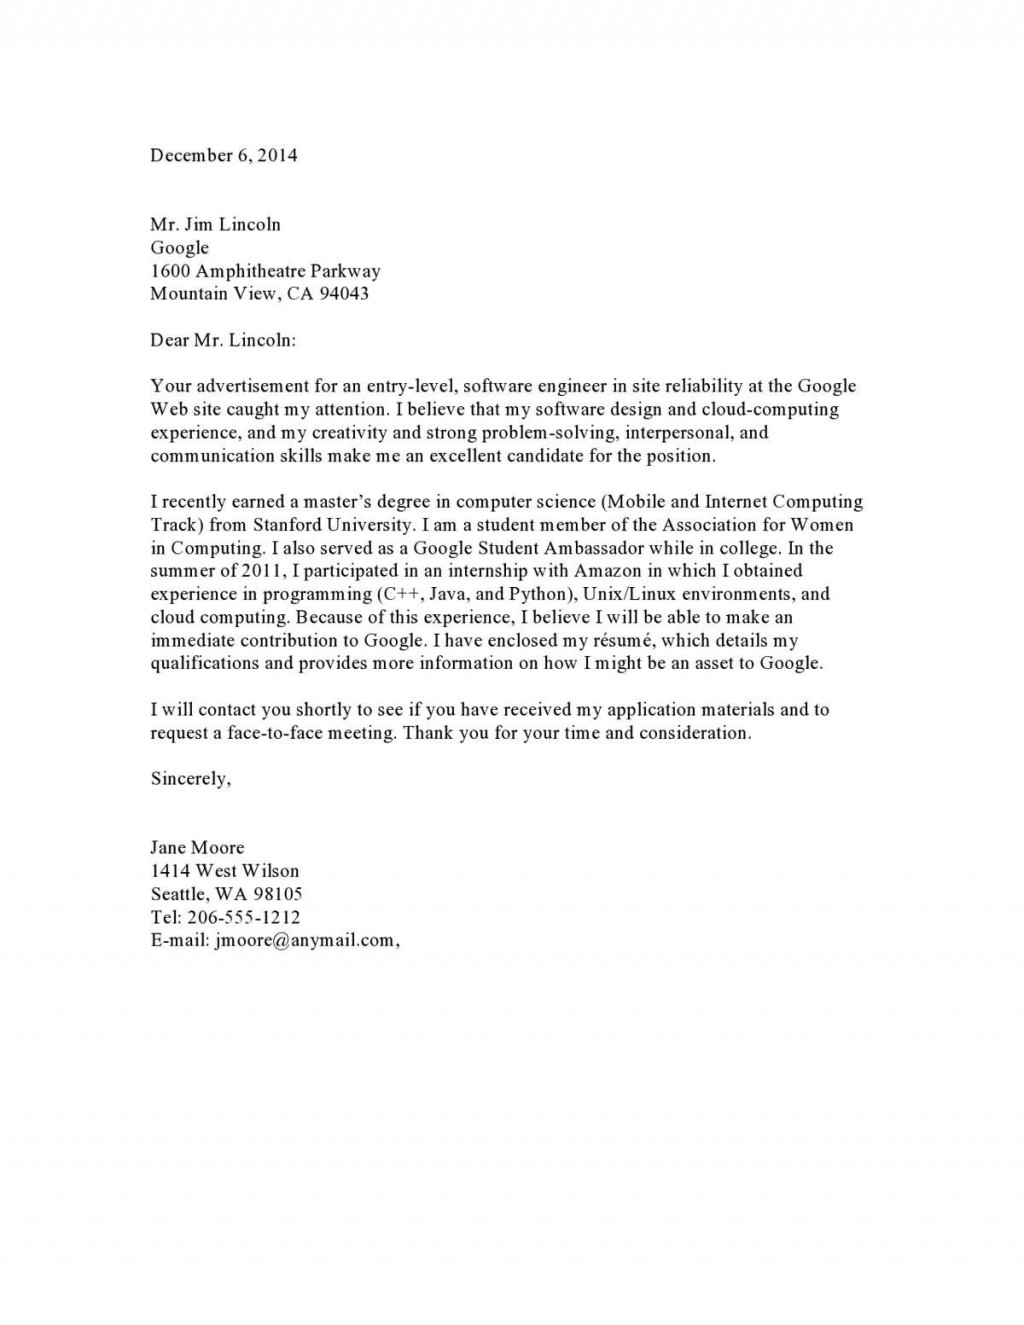 003 Striking Cover Letter Template Office Online High Def  MicrosoftLarge